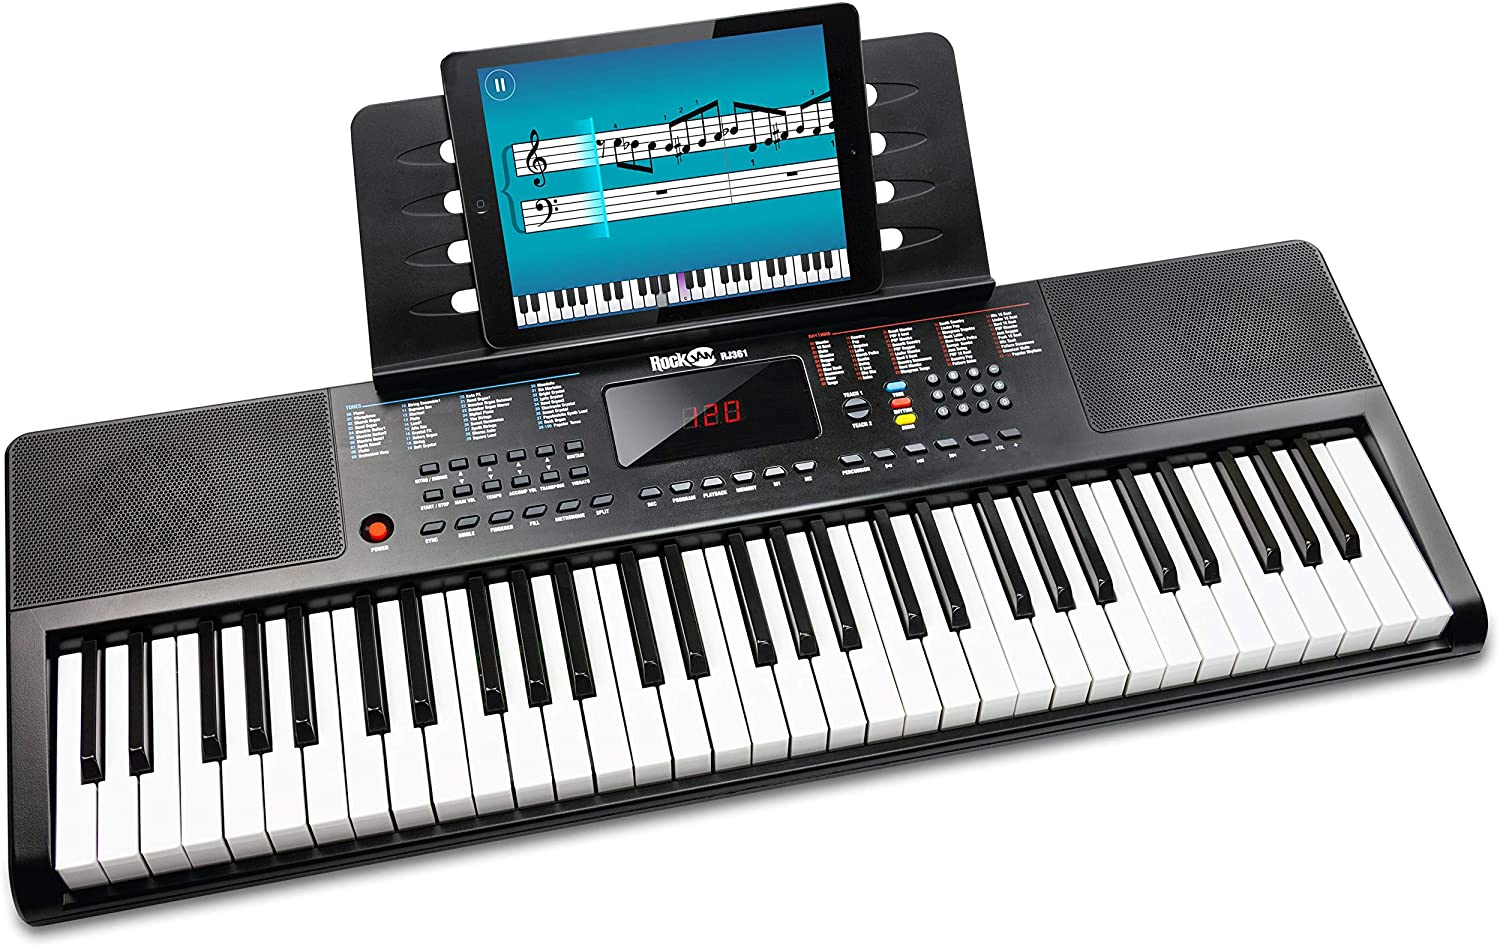 RockJam 61 Portable Electronic Keyboard